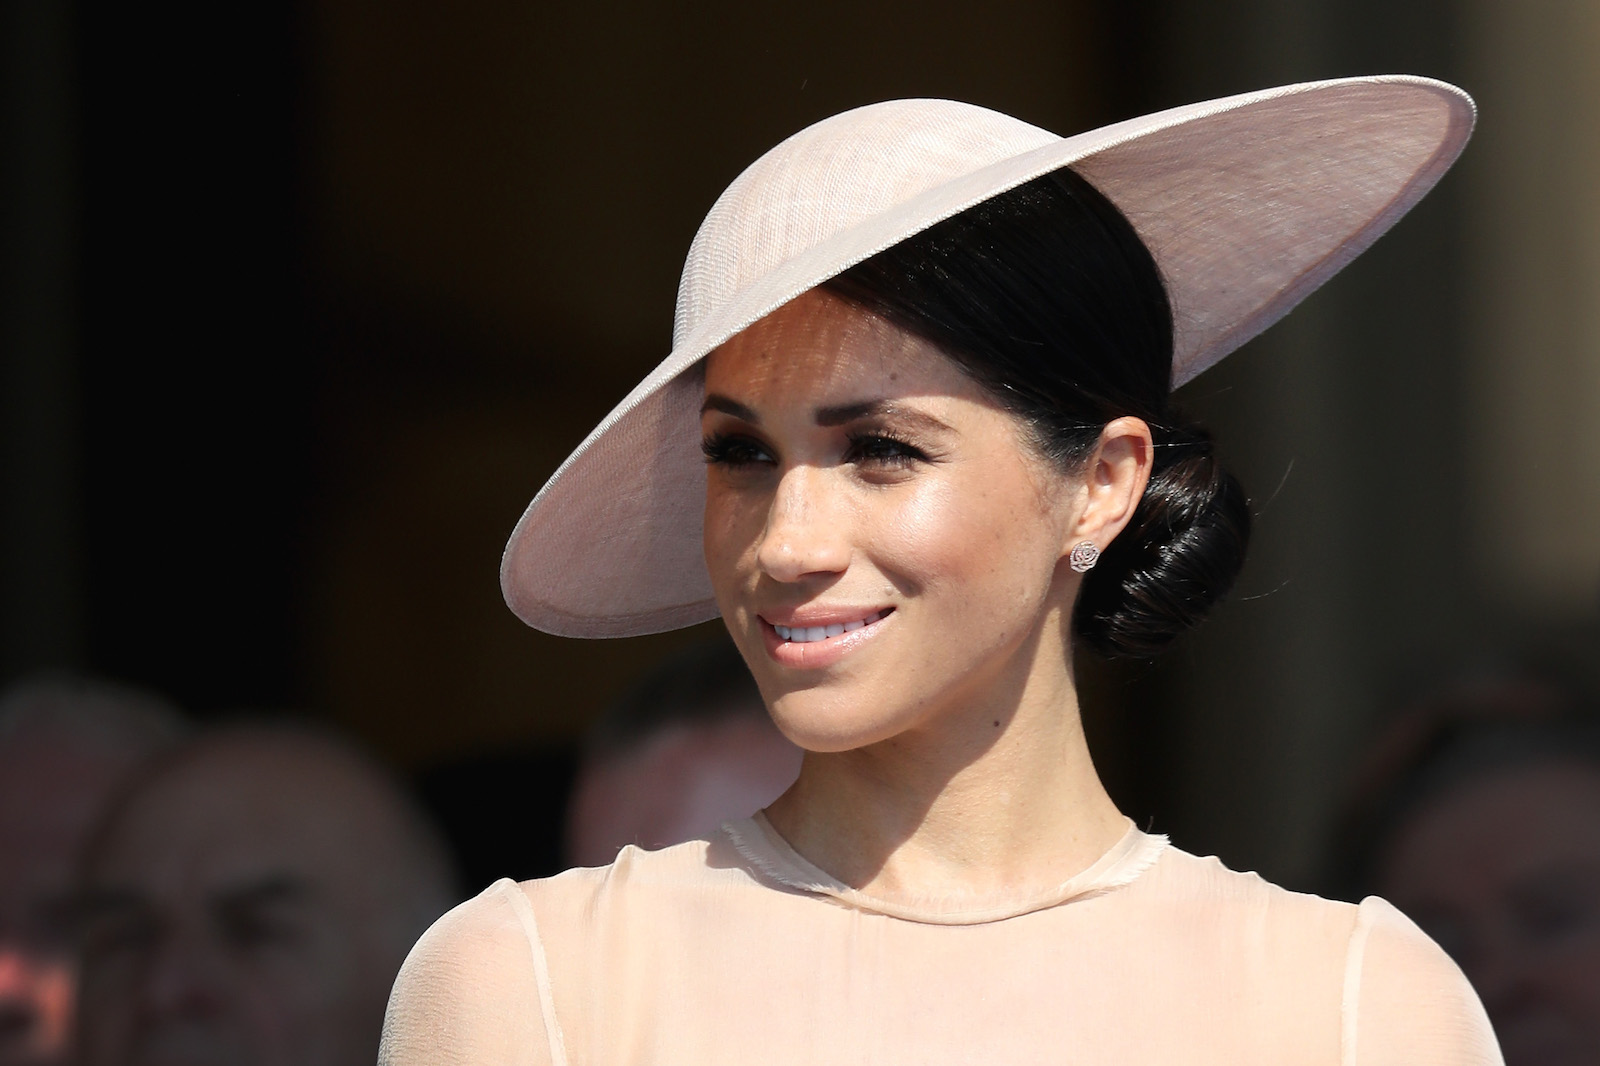 l-meghan-markle-become-president-of-the-united-states-main-image.jpg